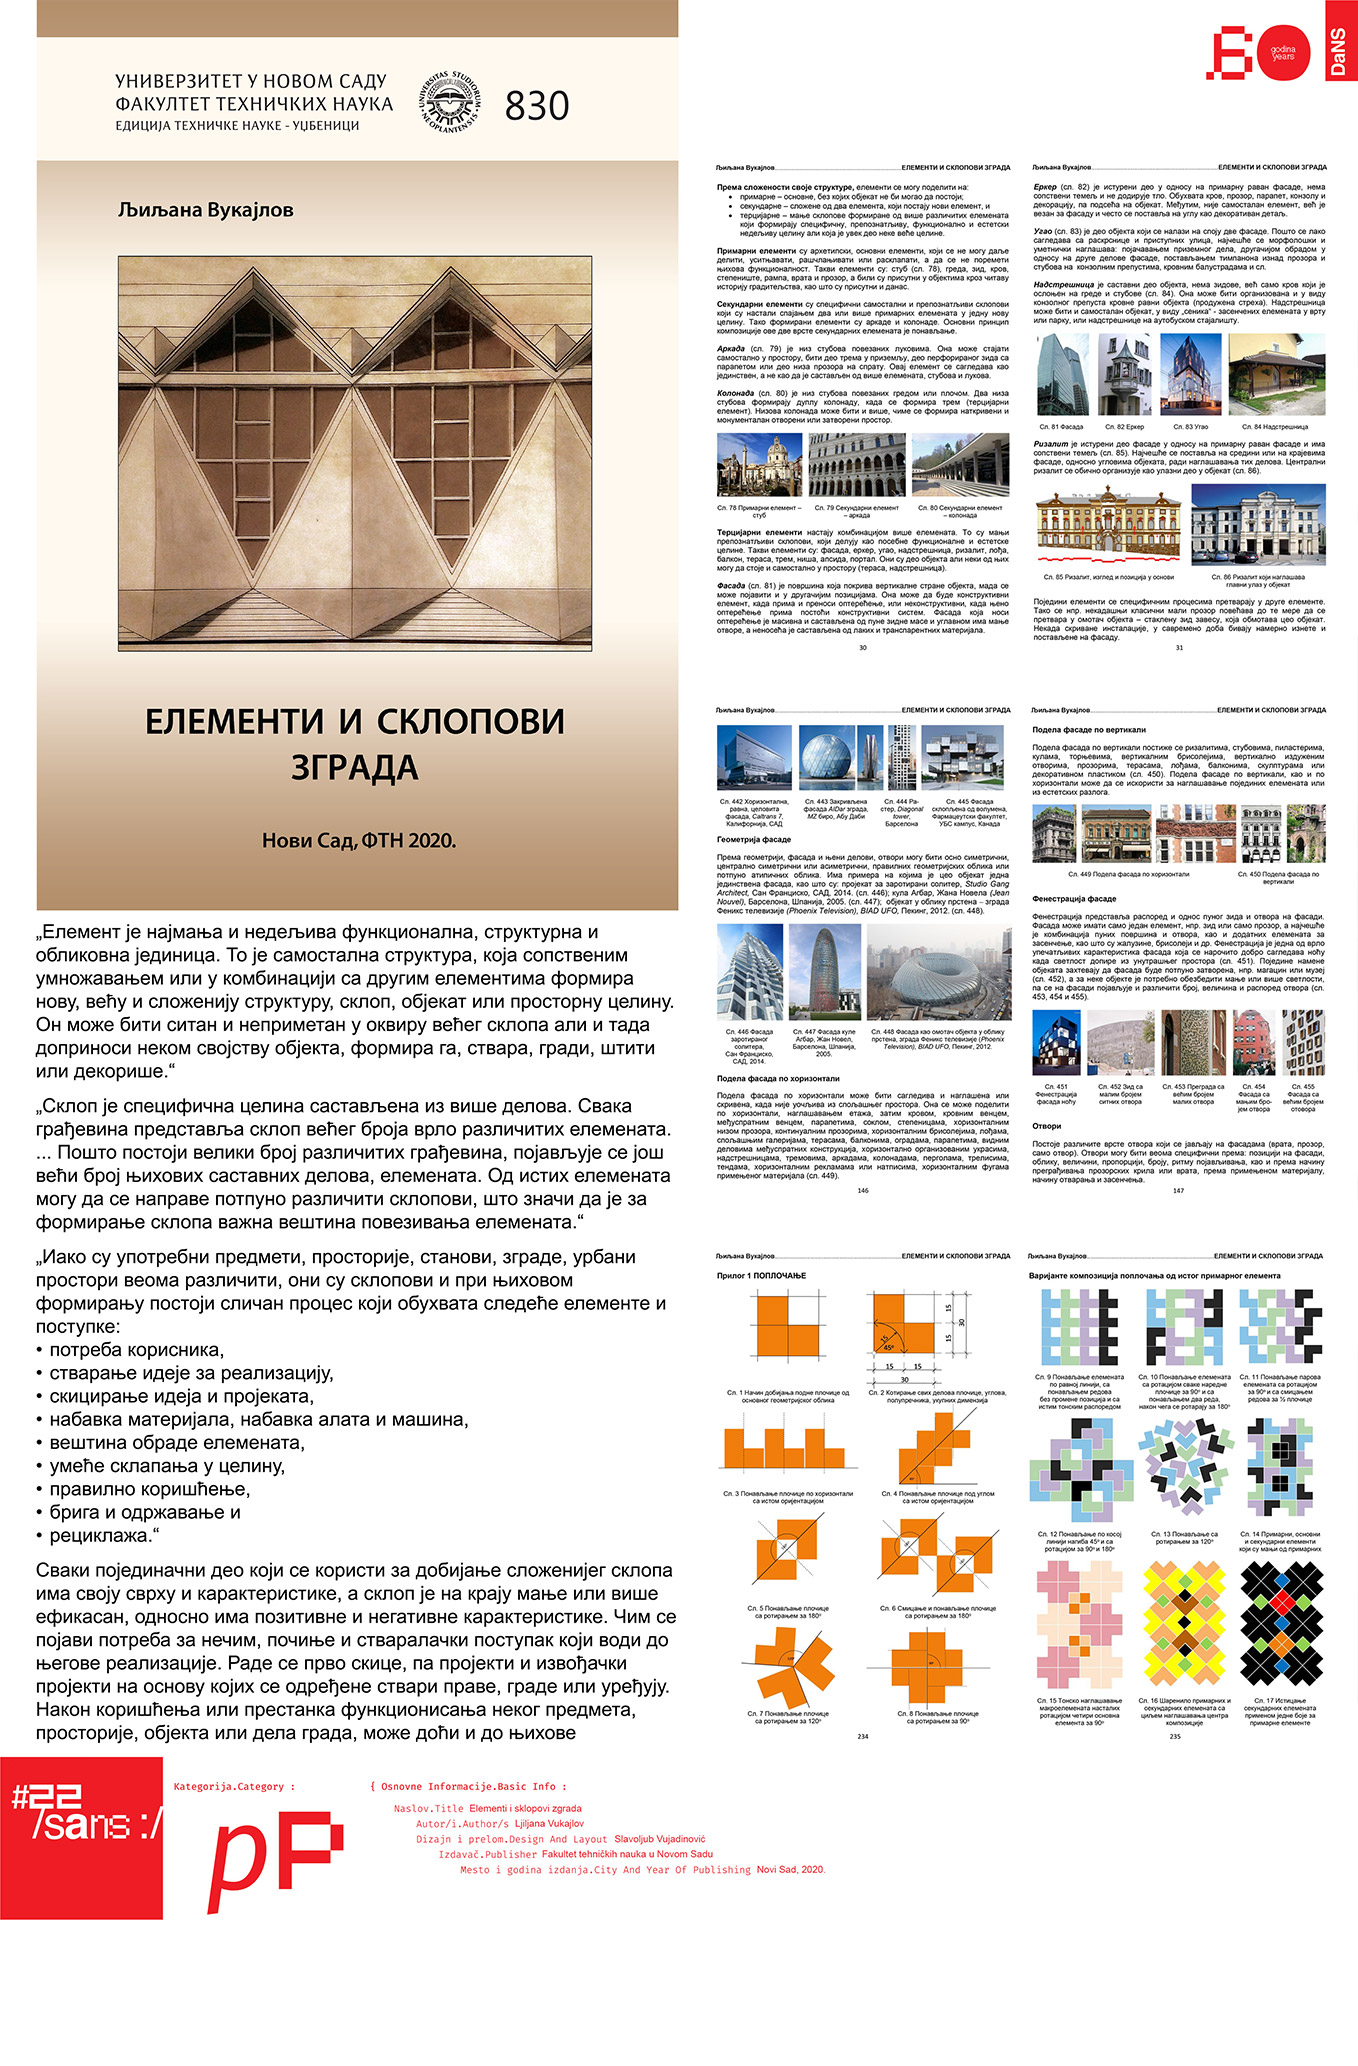 "<p class=""naslov-br"">pp01</p>Elementi i sklopovi zgrada // Building Elements and Constructions"